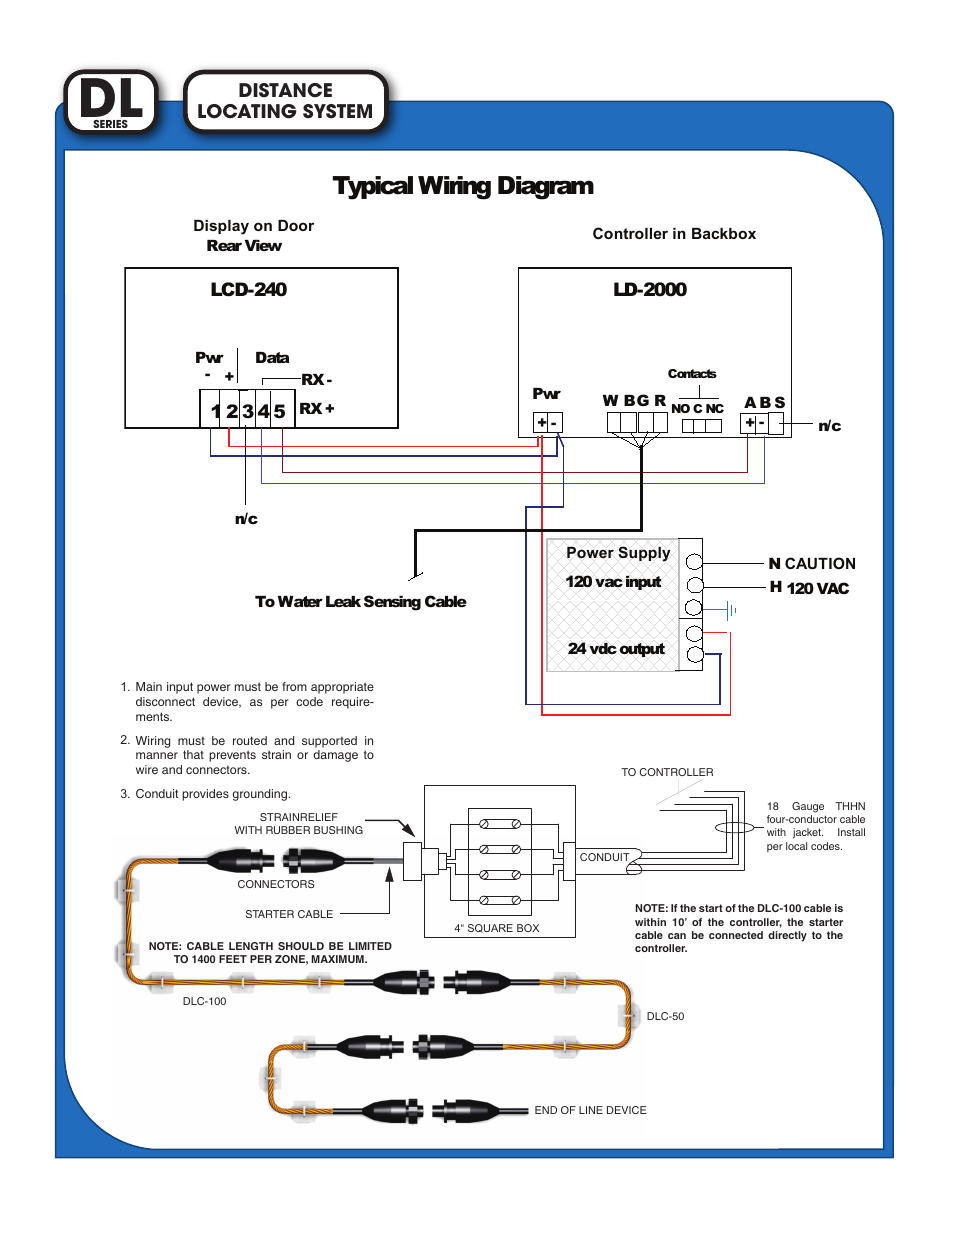 Typical Wiring Diagram  Locating System Distance